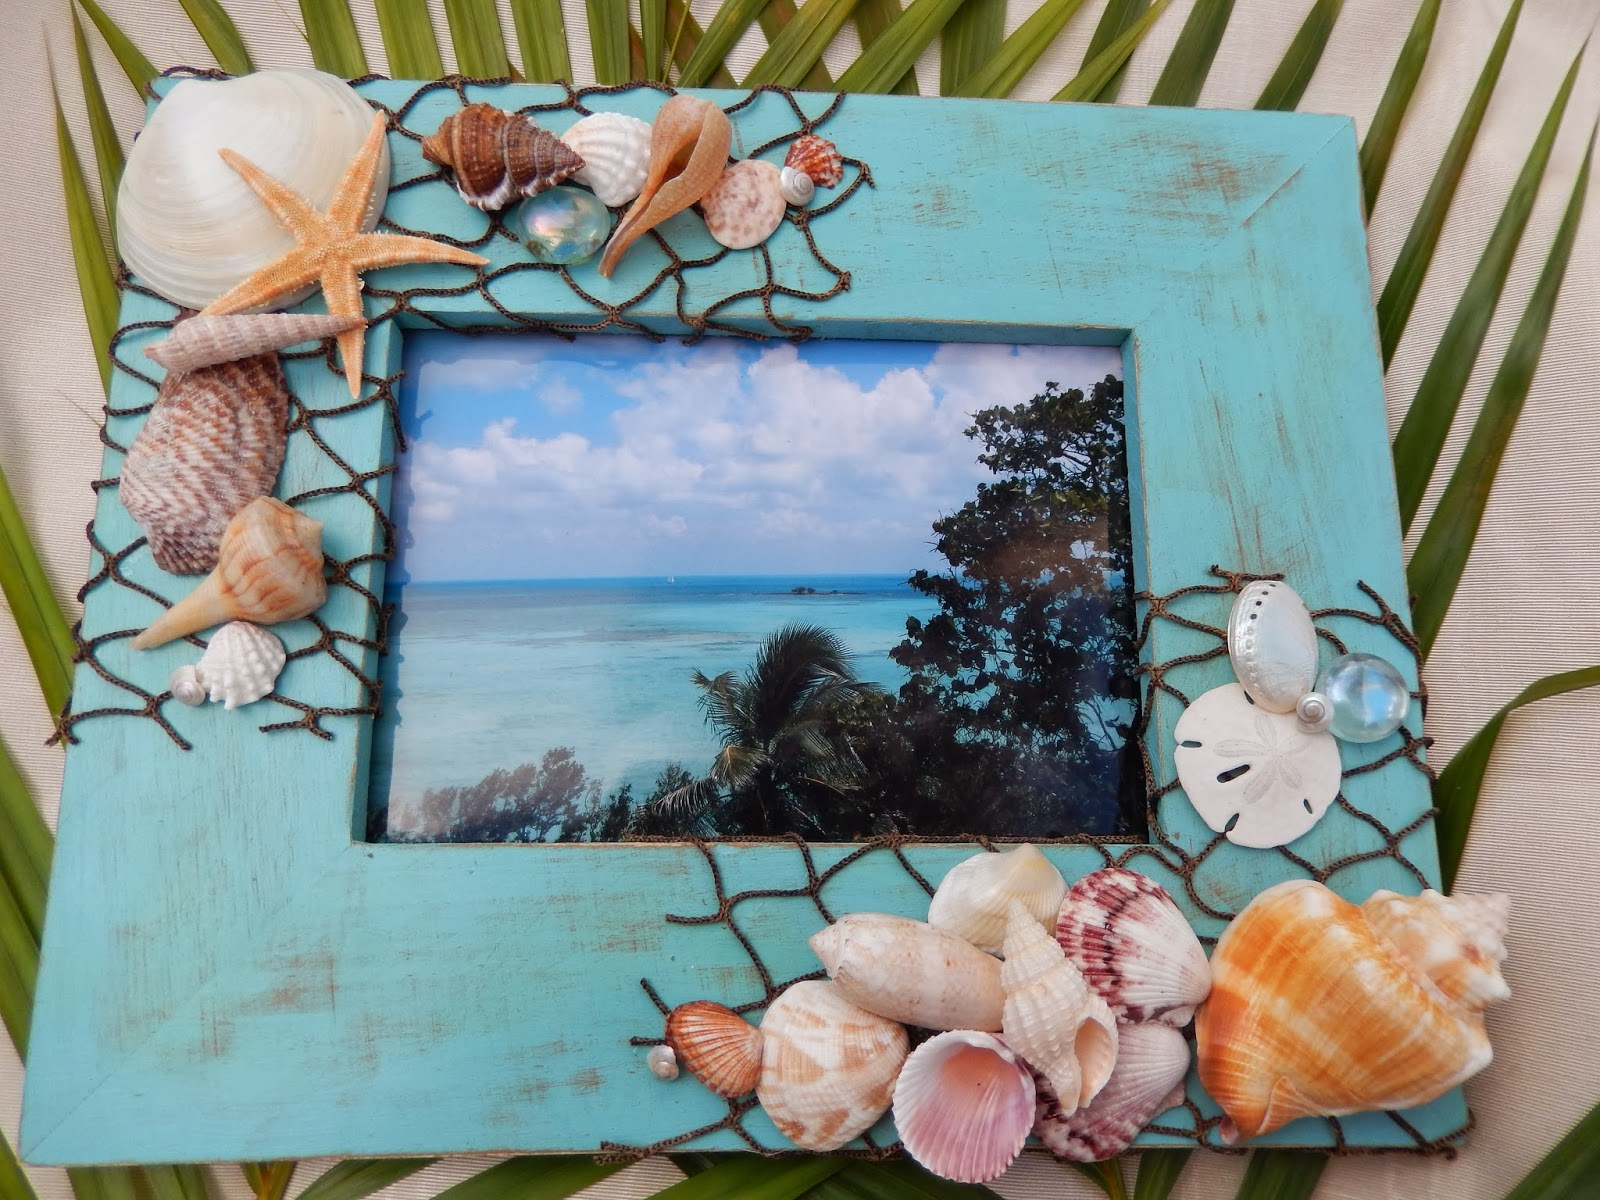 Classics By The Sea: The Sleepy Seahorse: New Photo Frames and Mirror